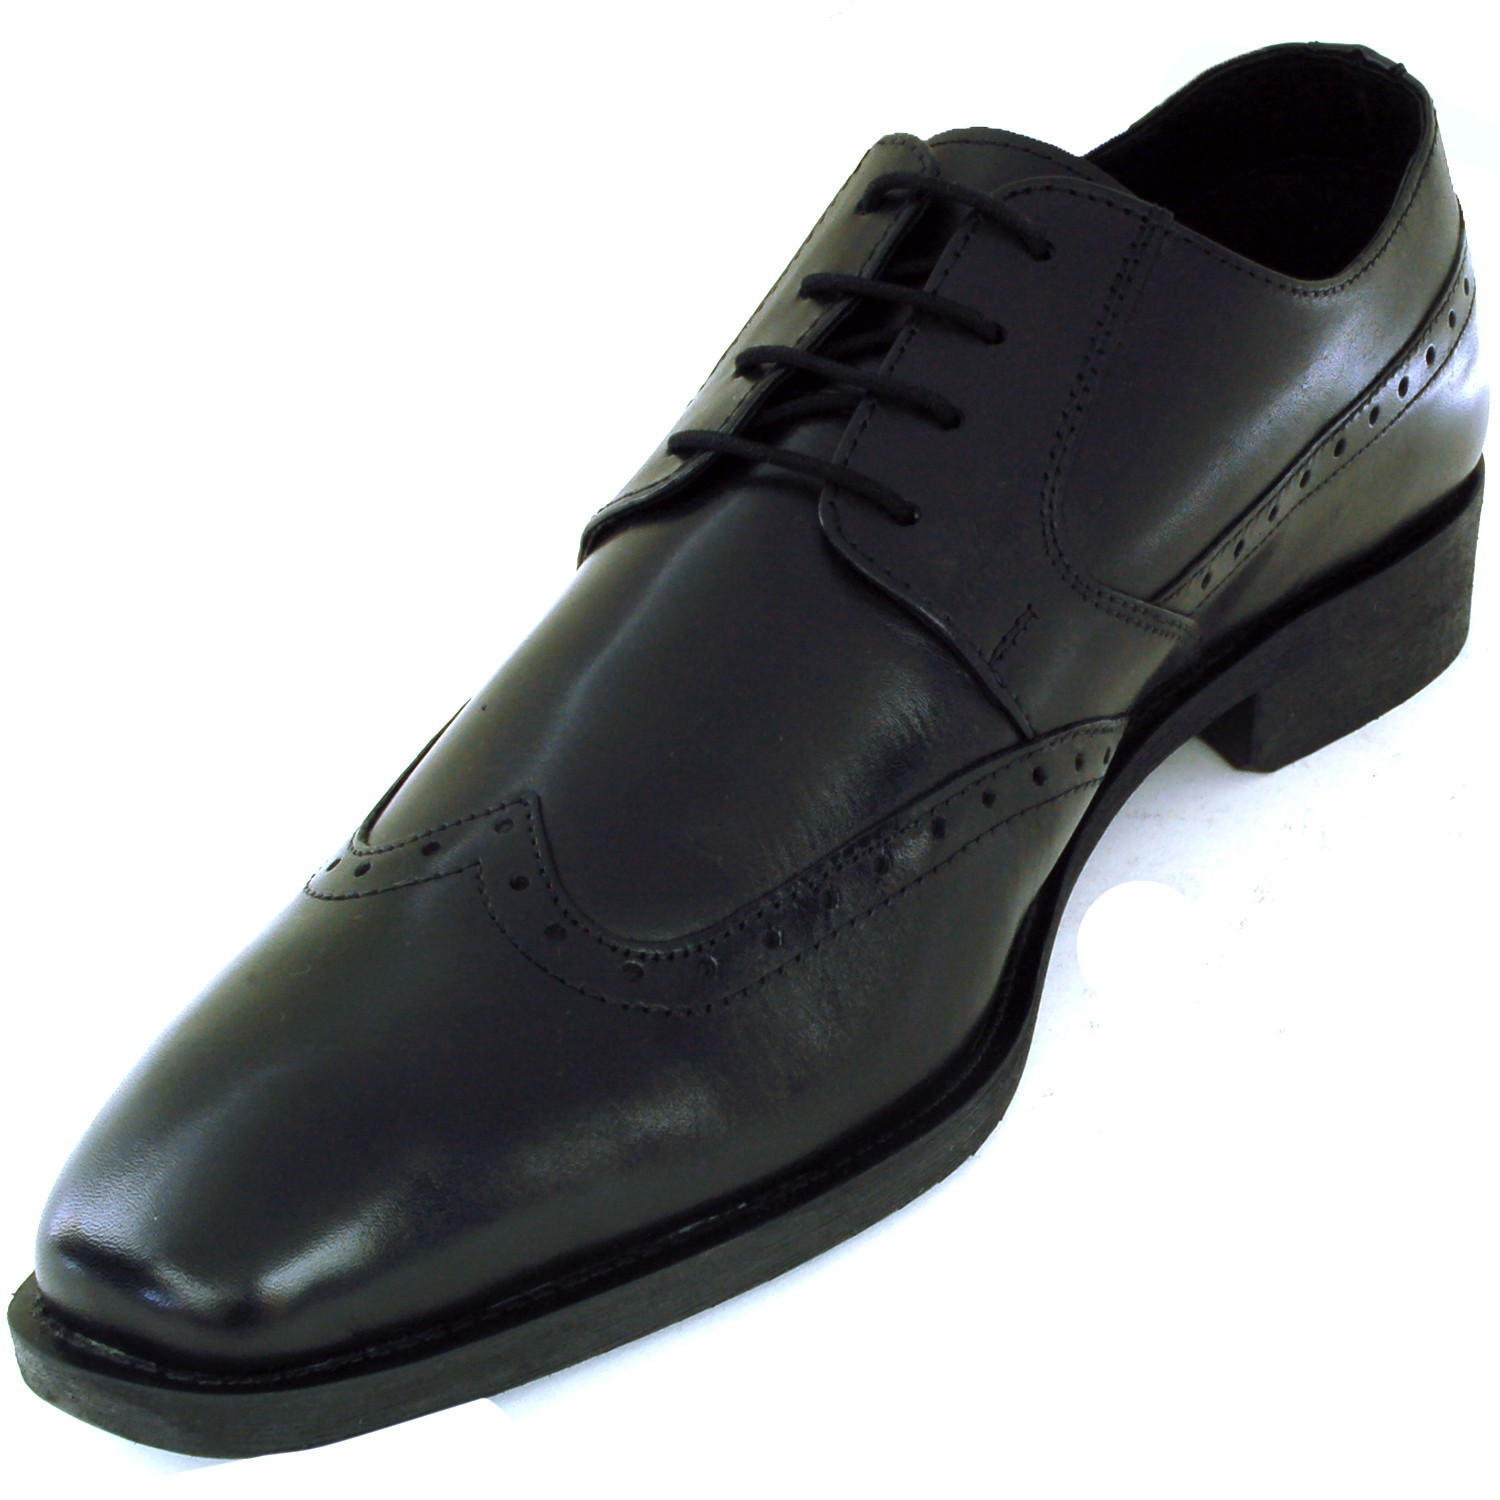 Top Rated Comfort Dress Shoes